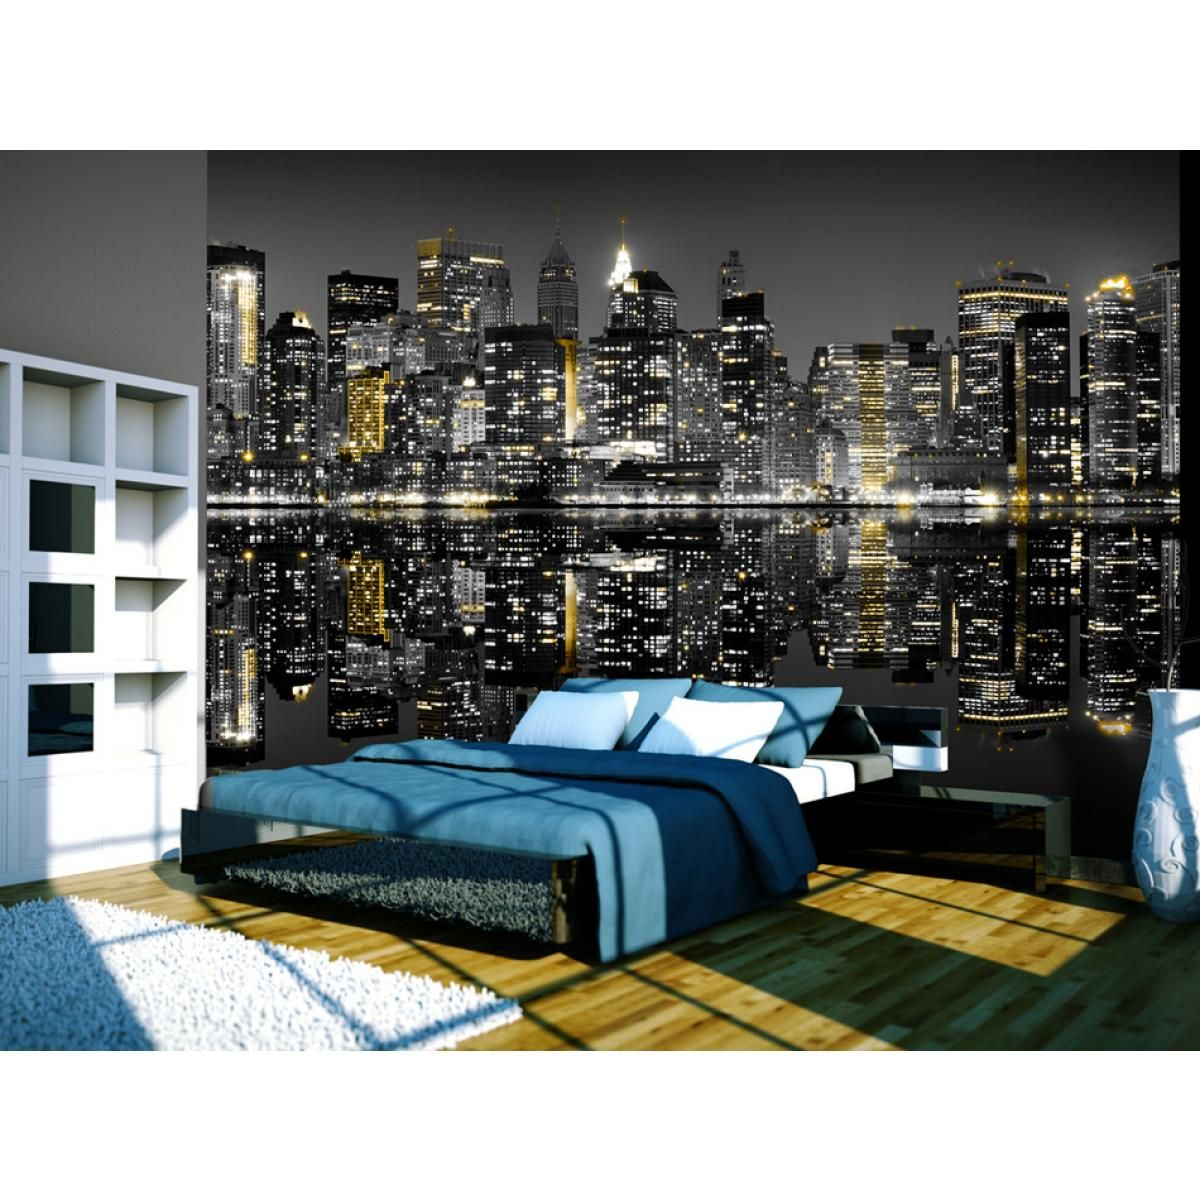 vlies fototapeten new york effektvolle deko im artgeist. Black Bedroom Furniture Sets. Home Design Ideas